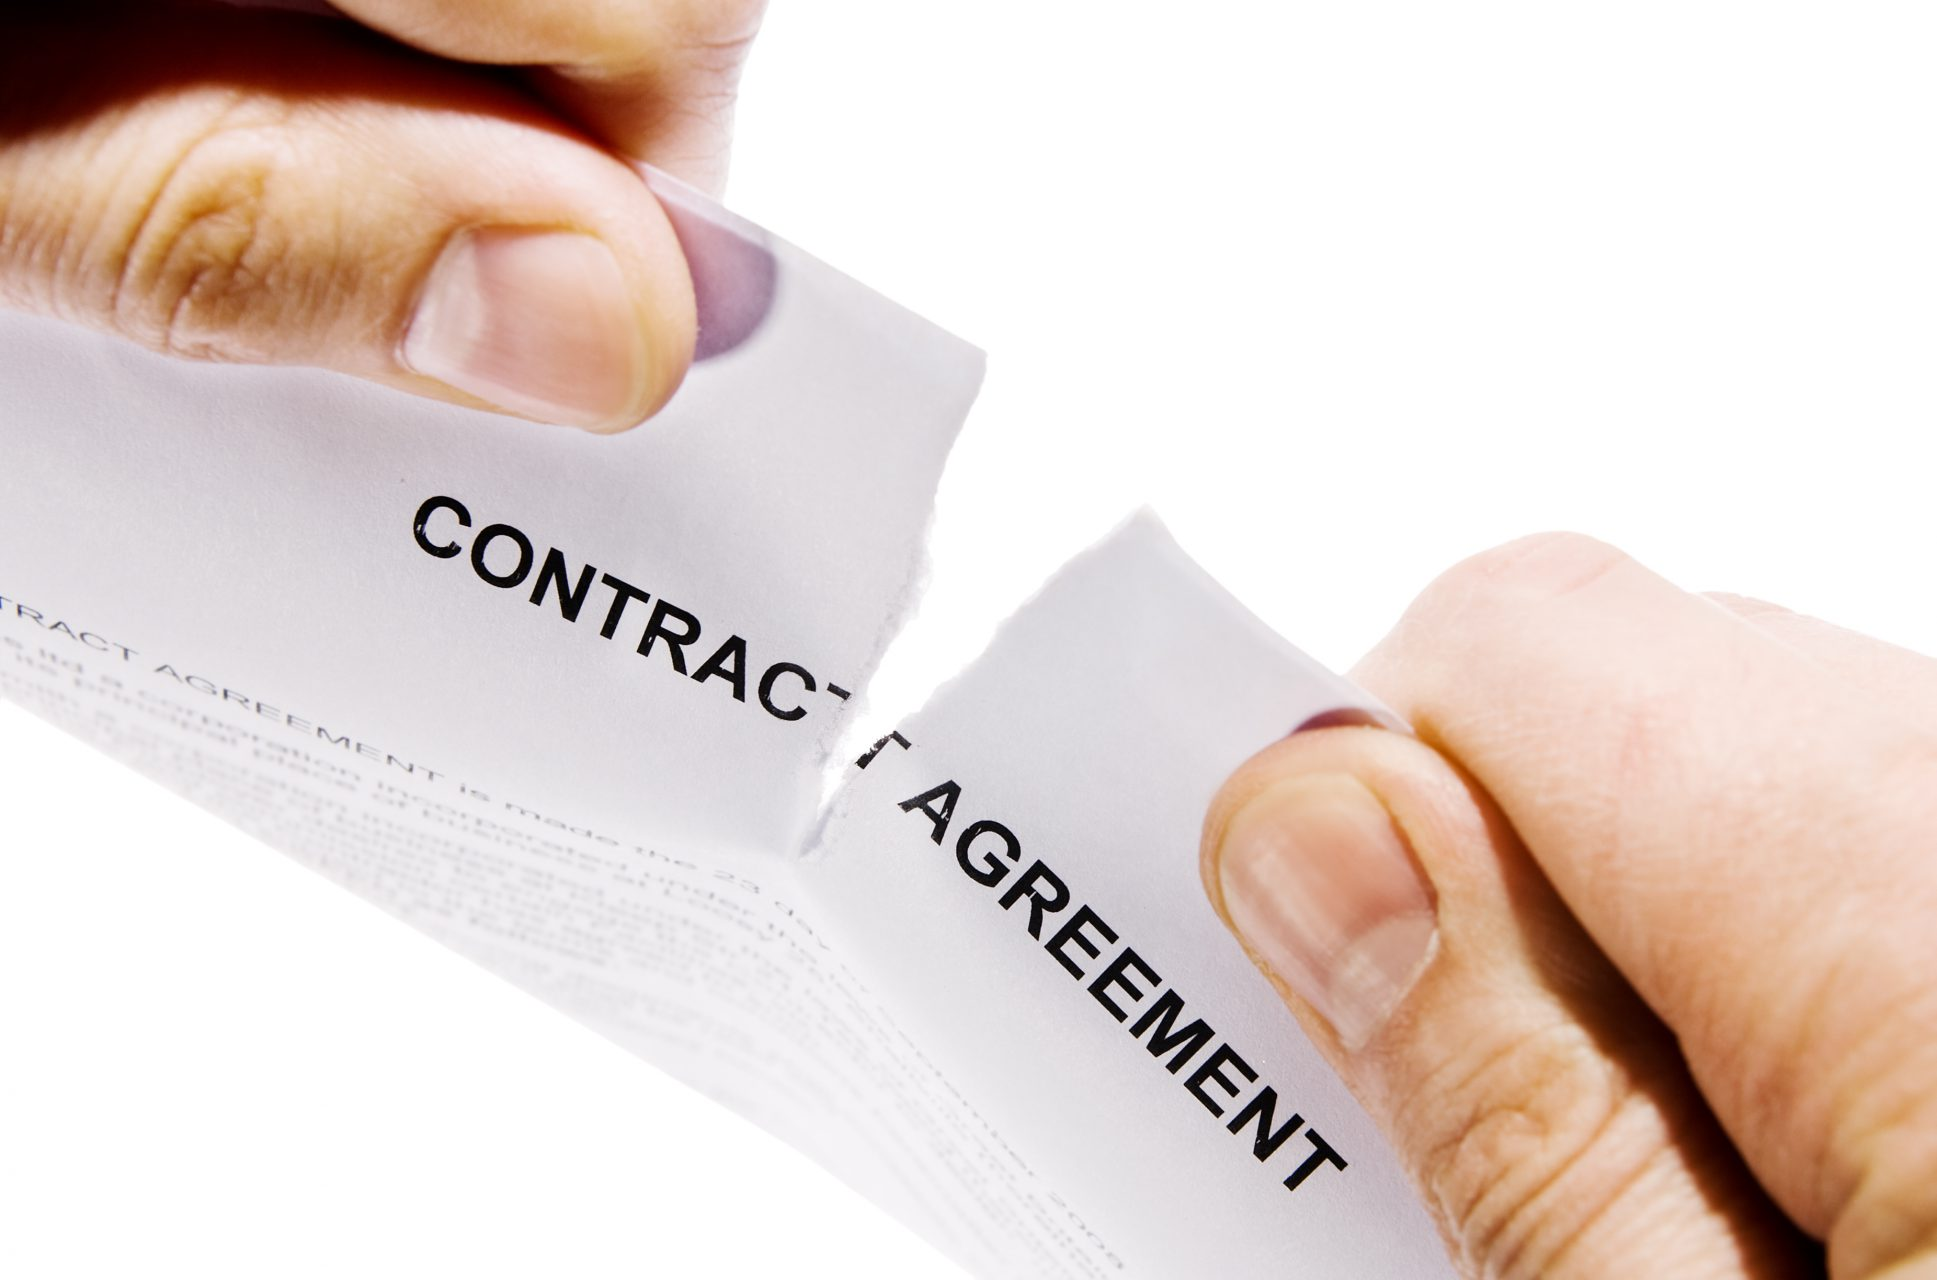 two hads break the contract agreement